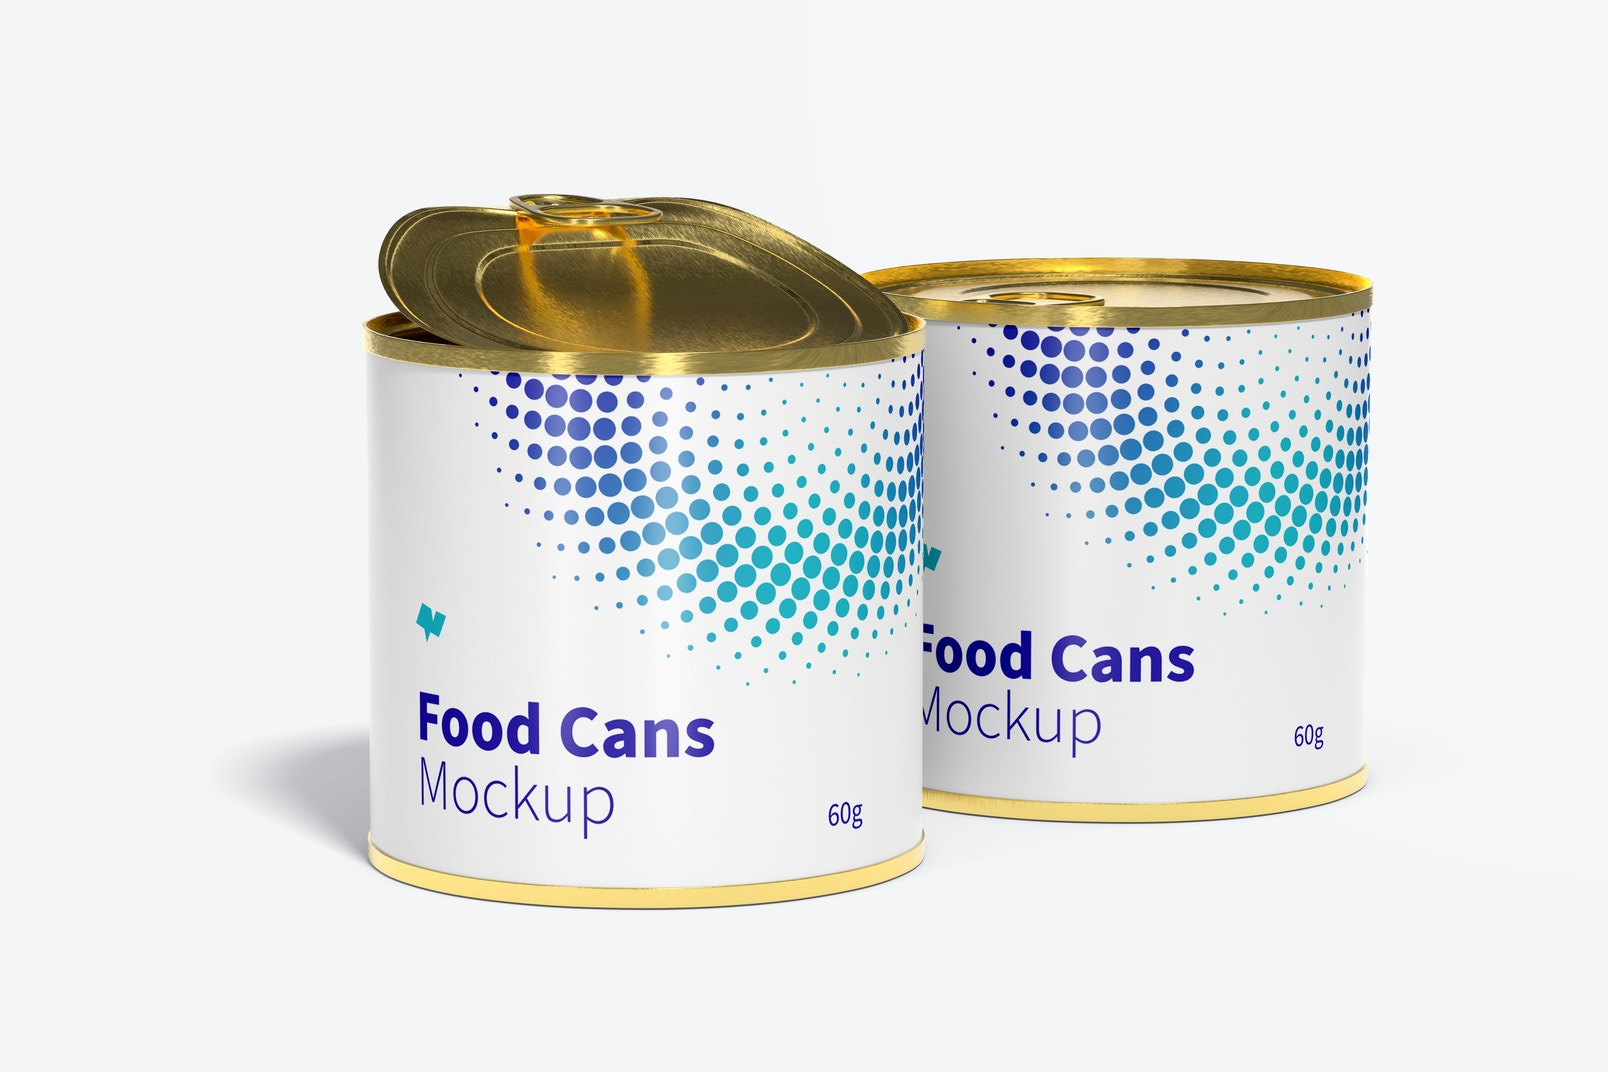 60g Food Cans Mockup, Opened and Closed